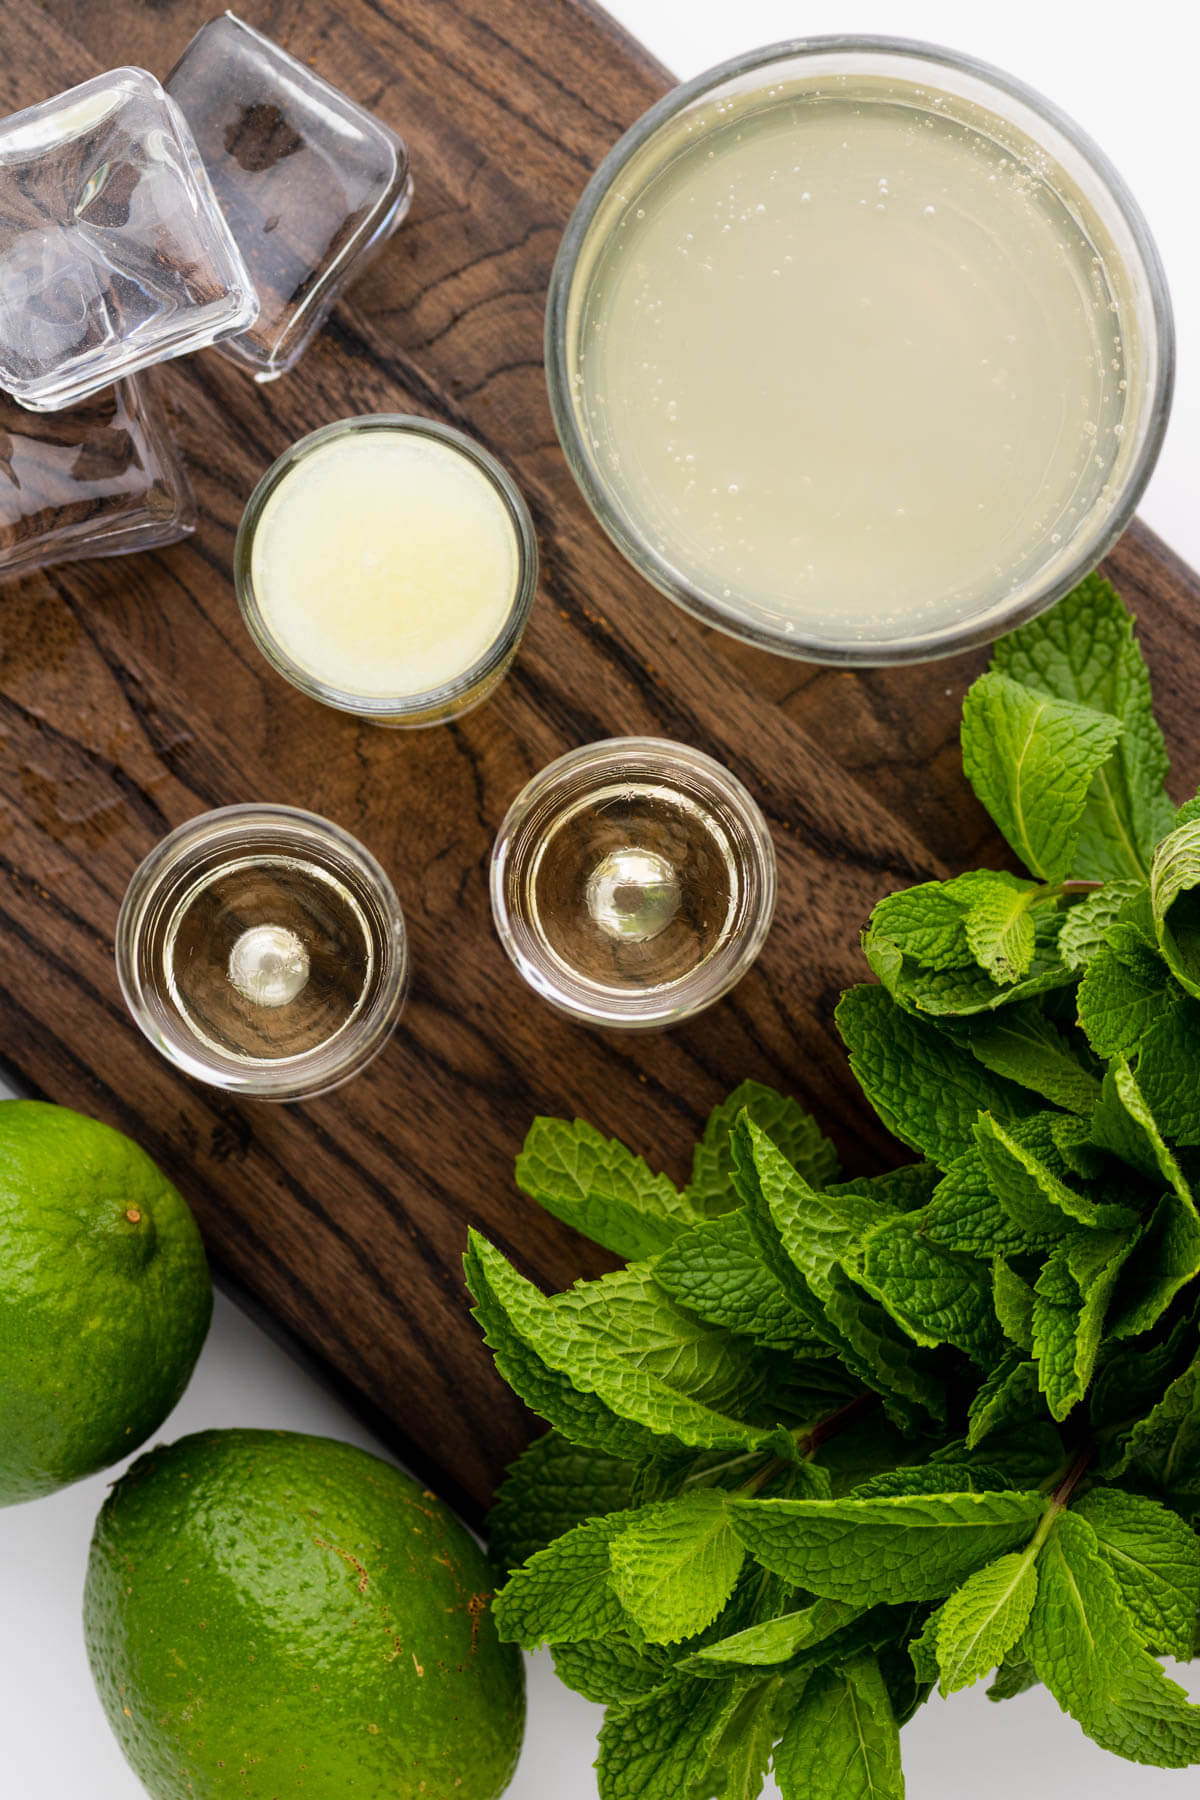 Ingredients used in a classic Moscow Mule recipe.